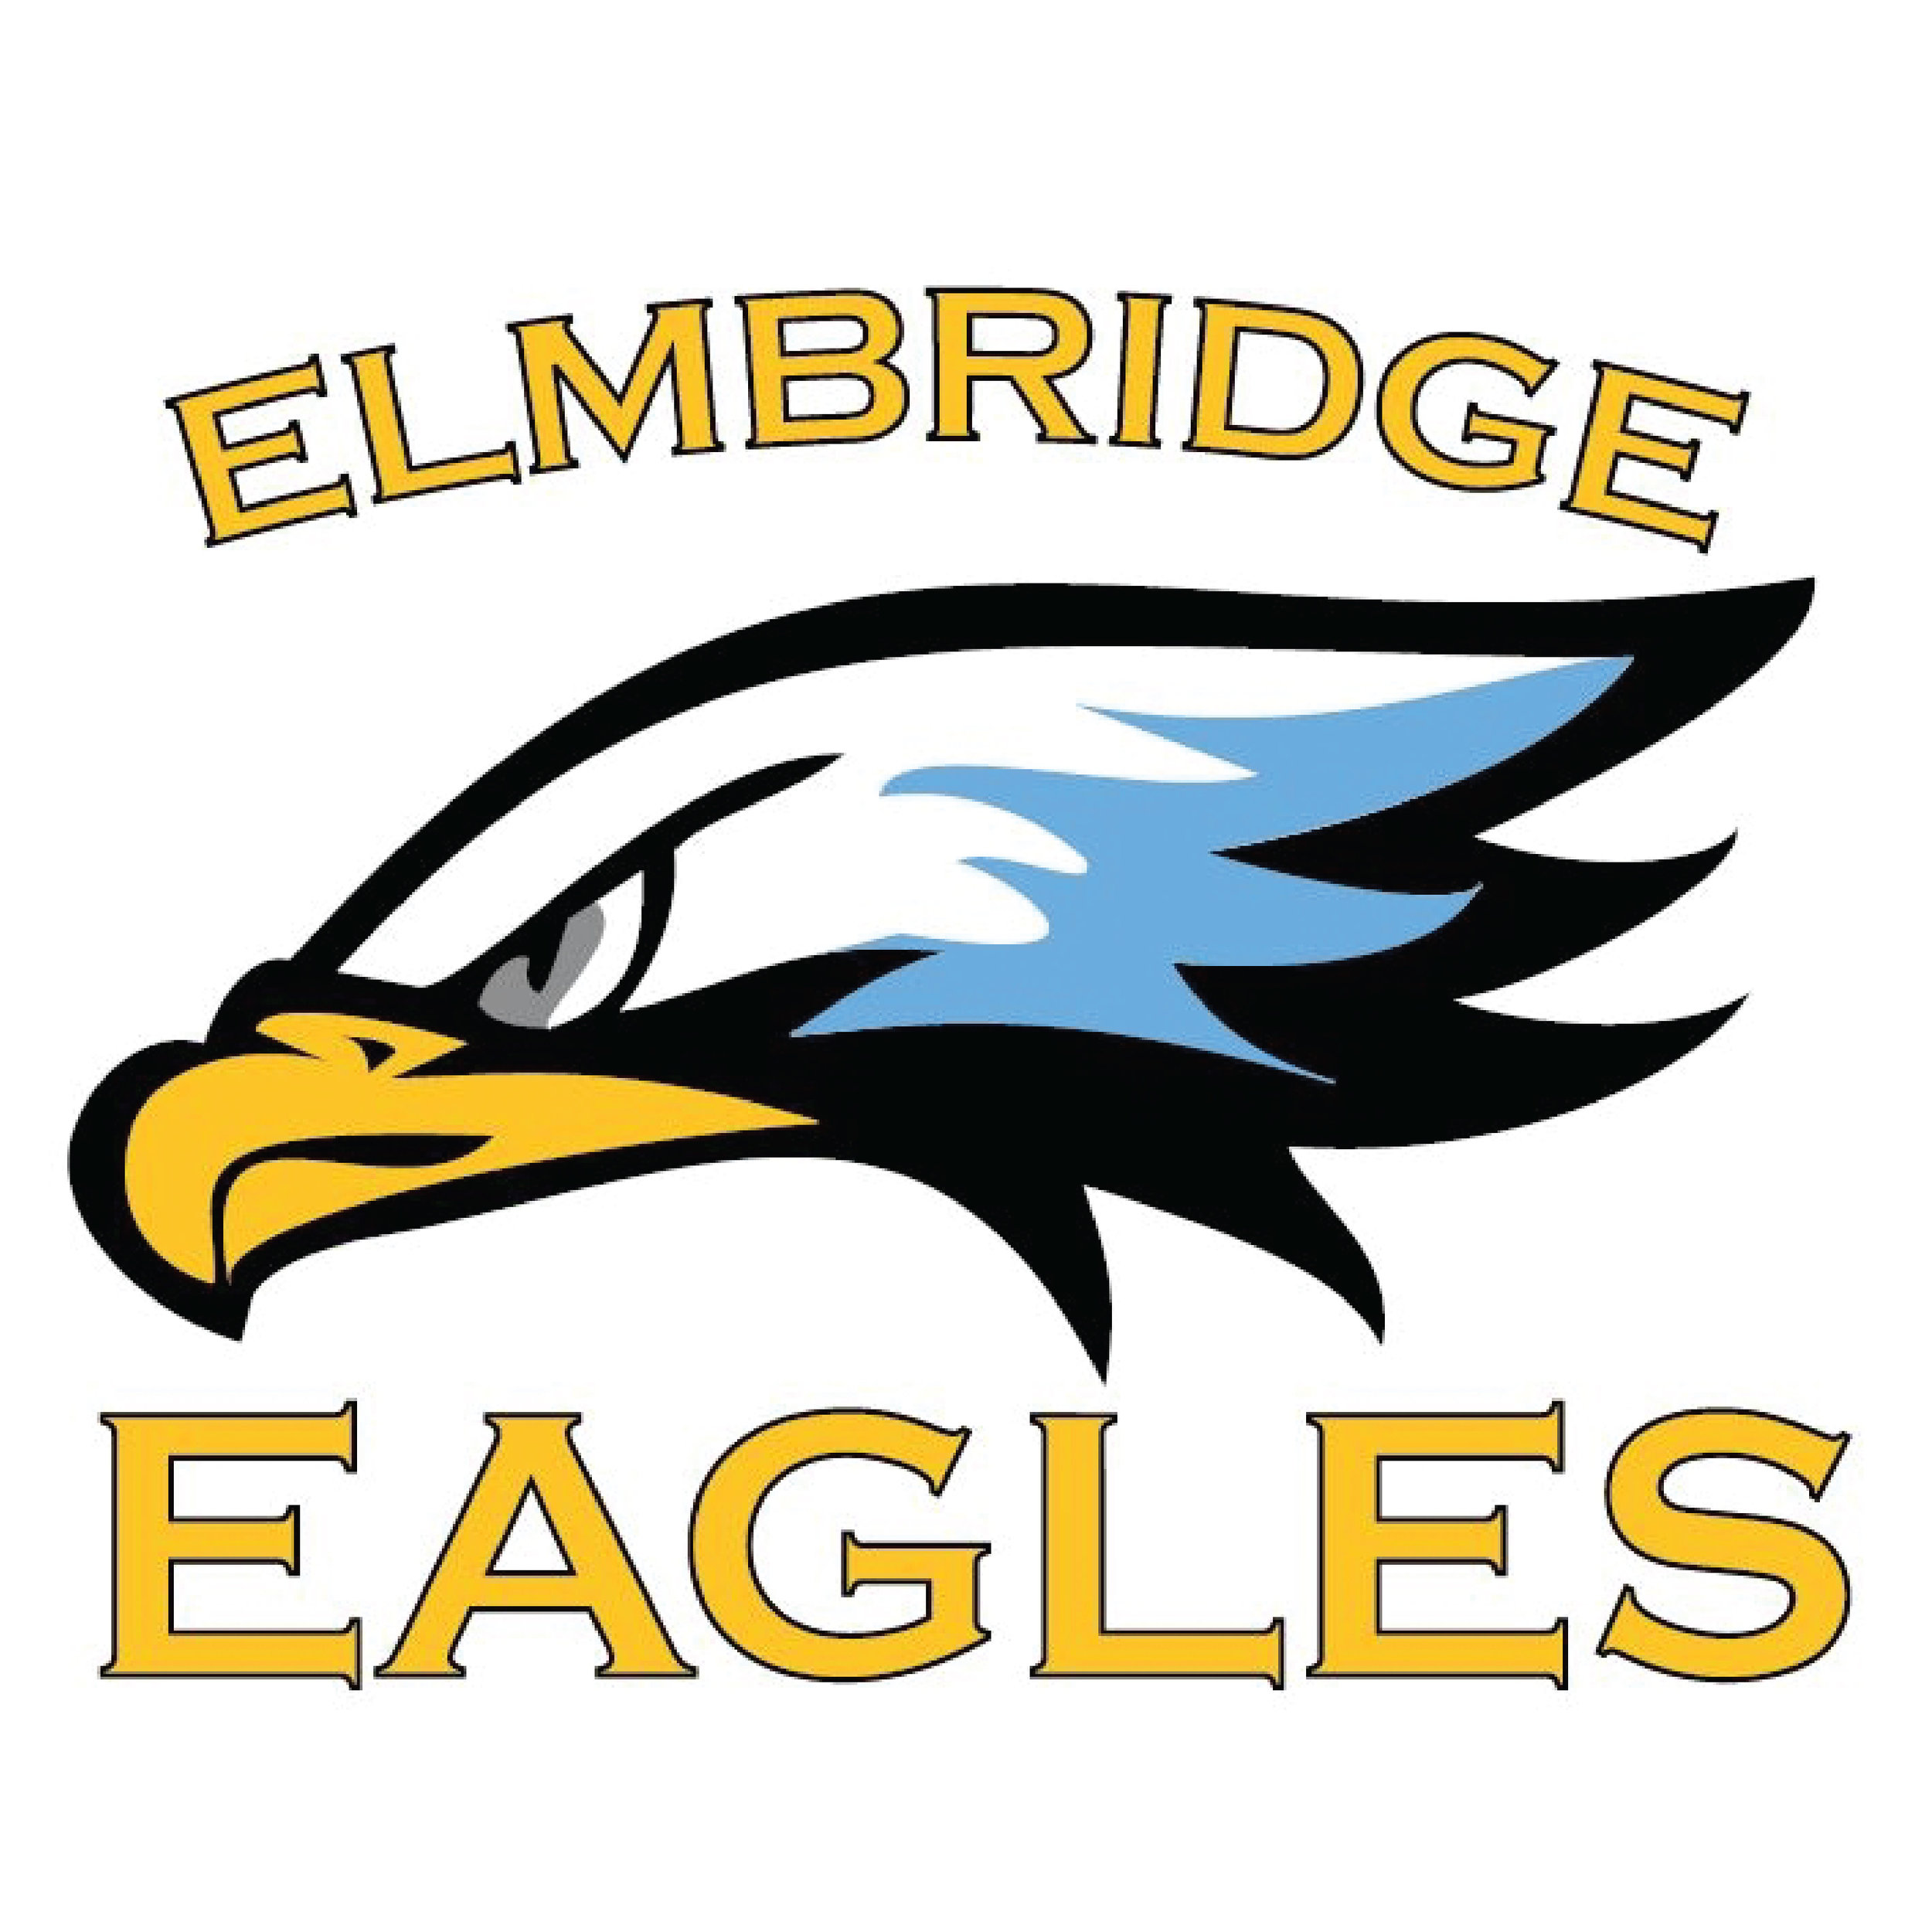 4. Elmbridge Eagles